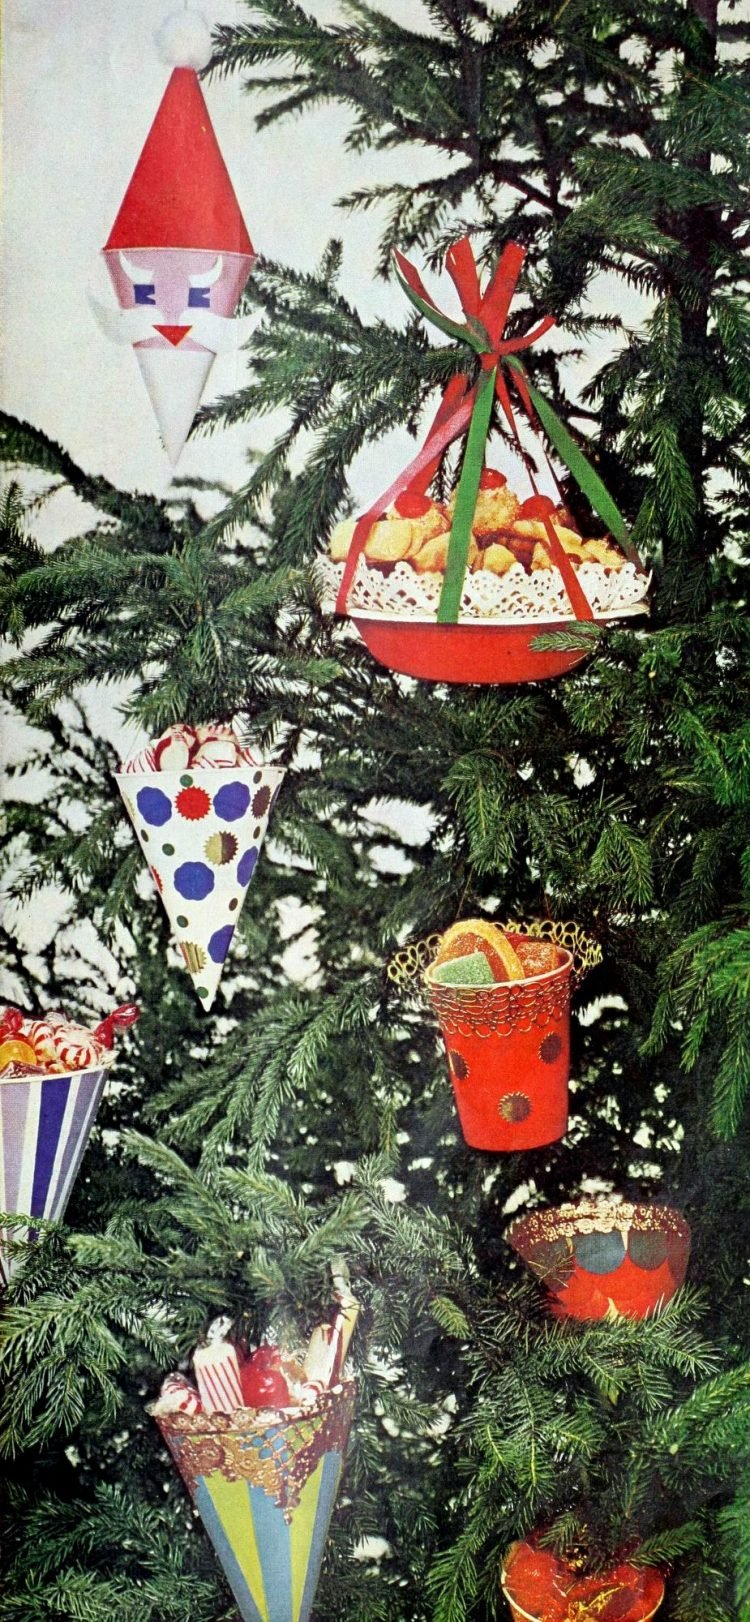 Make a sugar-plum tree A retro Christmas craft for the family